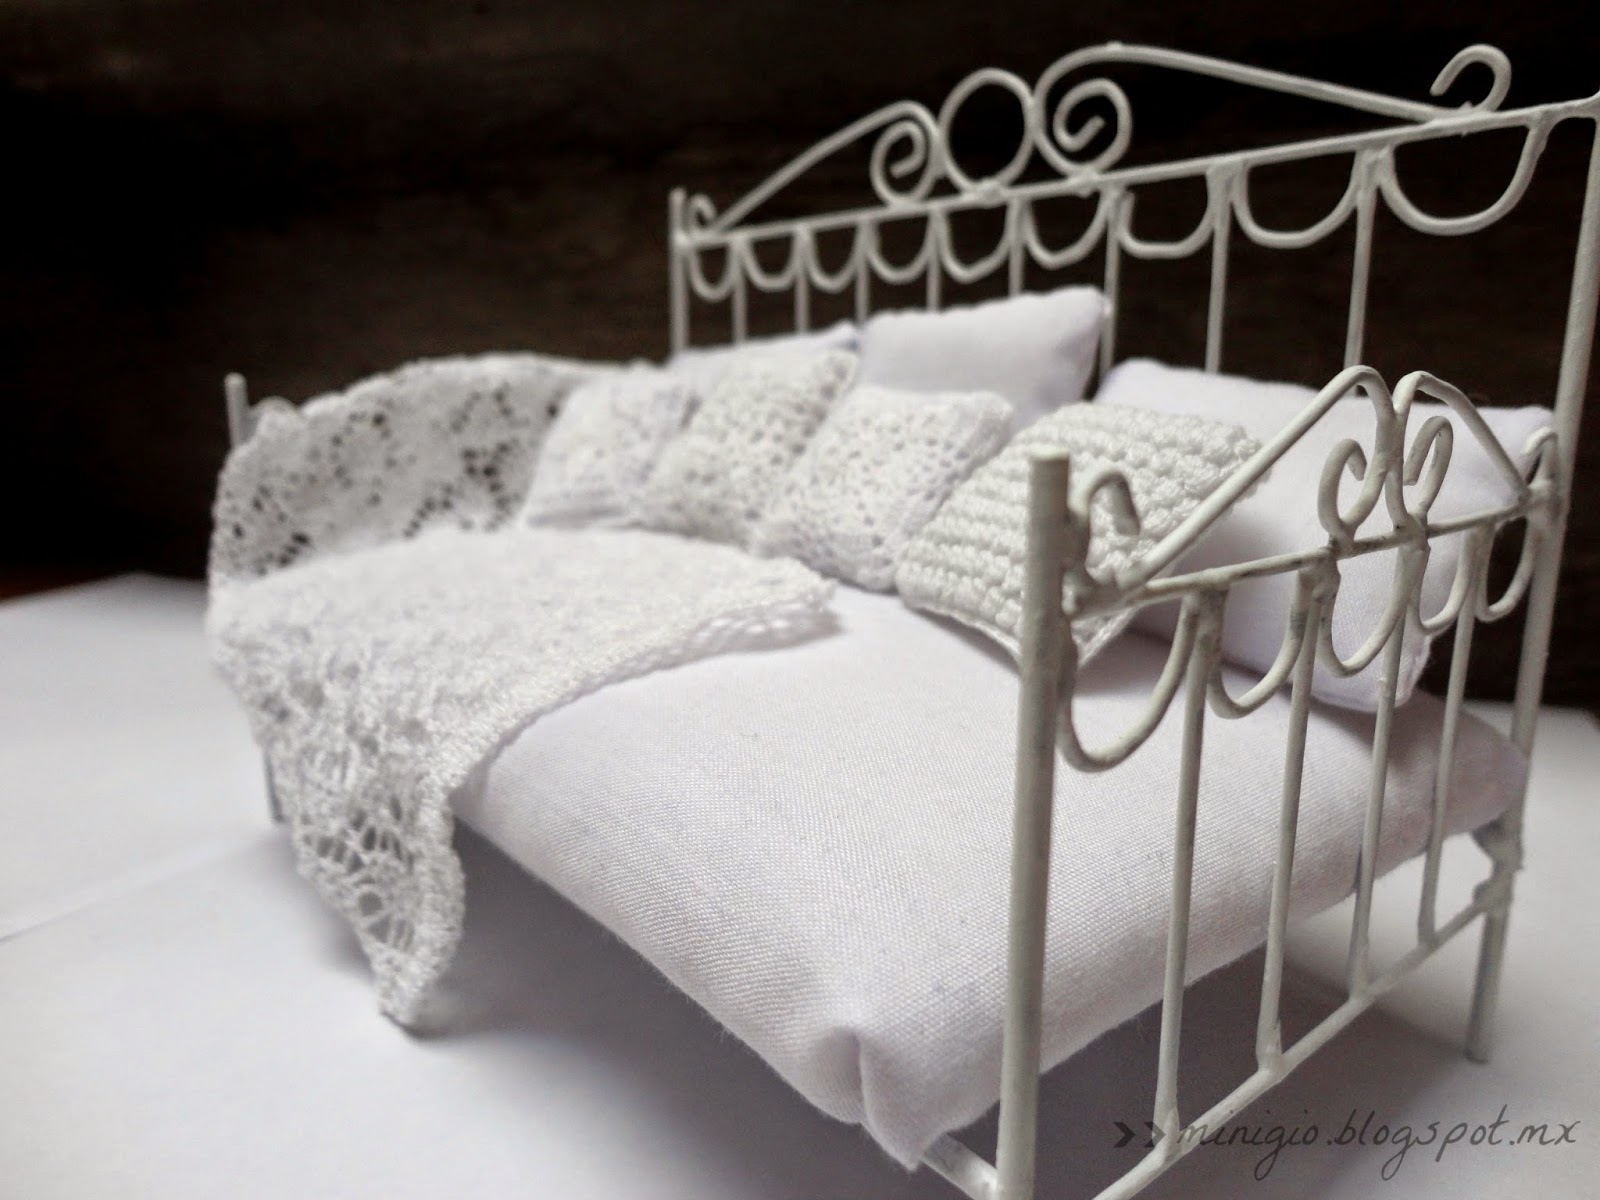 miniature bed, dollhouse, scale 1:12, crochet, pillow